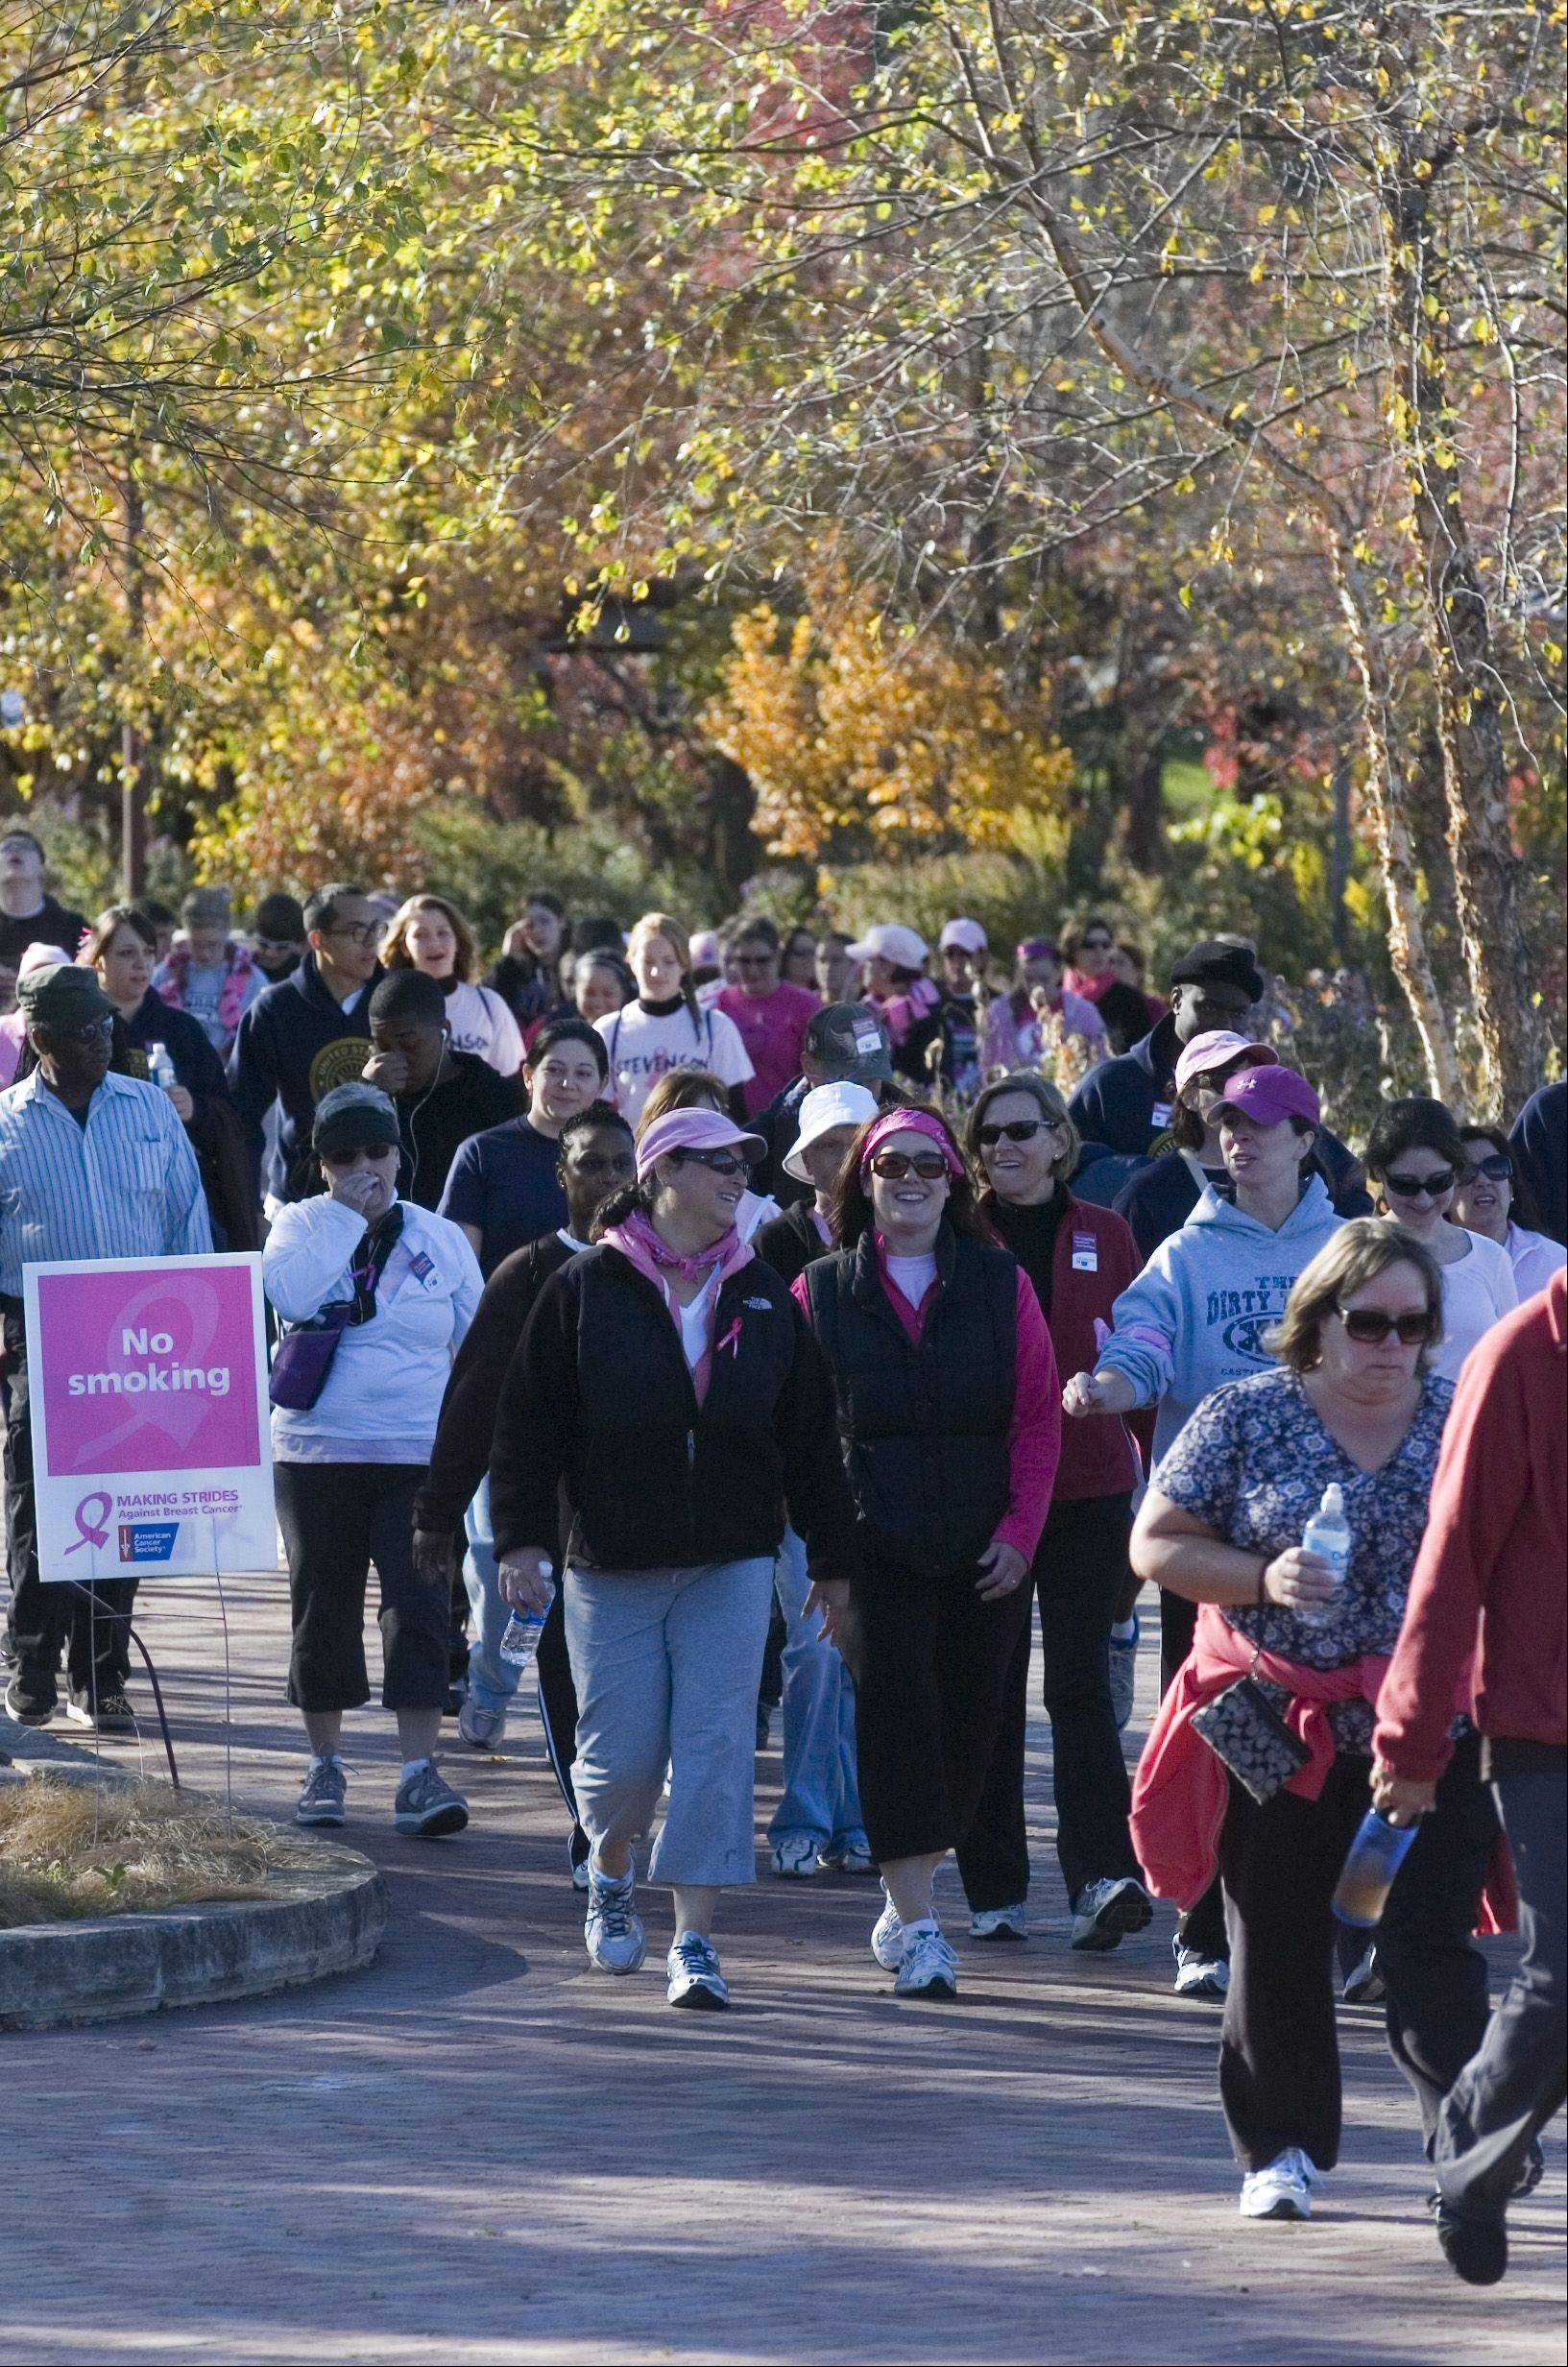 Over the next two weekends, thousands of breast cancer survivors and family members and friends who support them will unite for Making Strides Against Breast Cancer walks to benefit the American Cancer Society's research and programs.